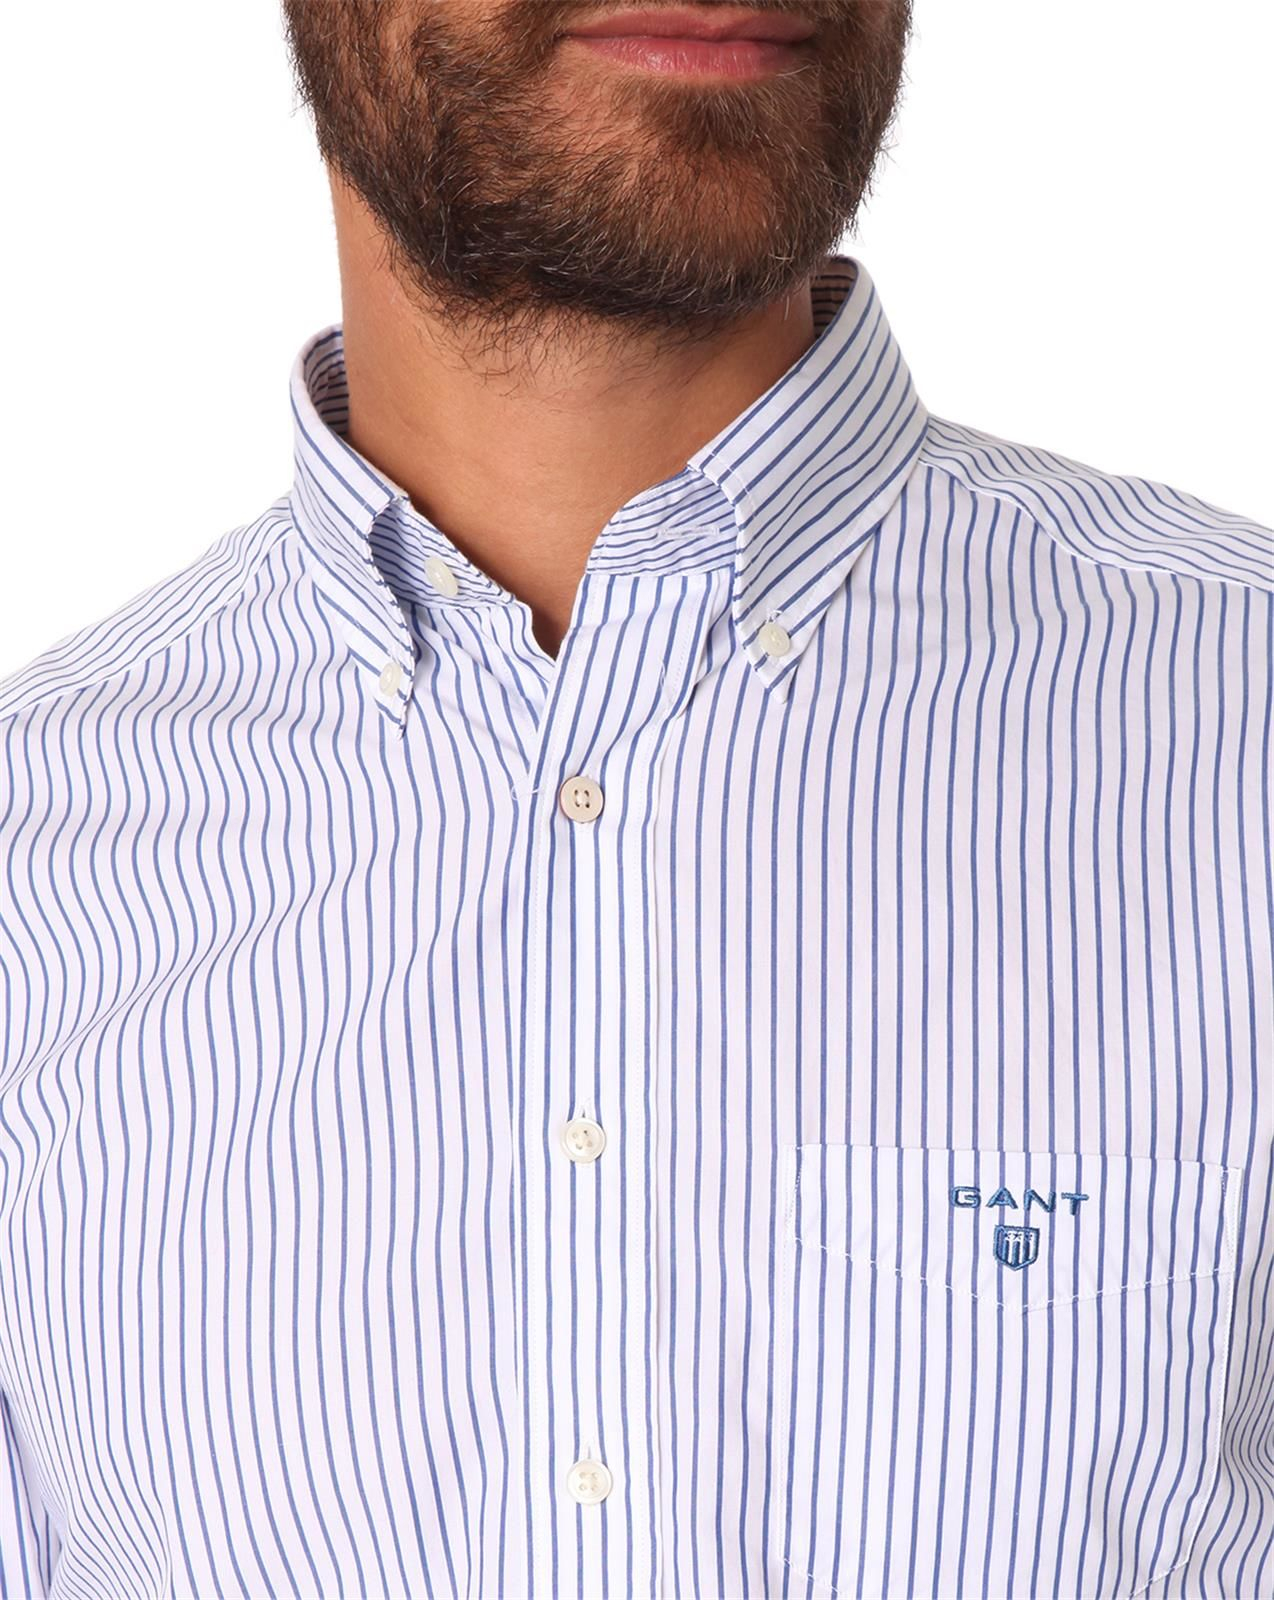 Gant white and navy striped button down shirt in white for for Striped button down shirts for men